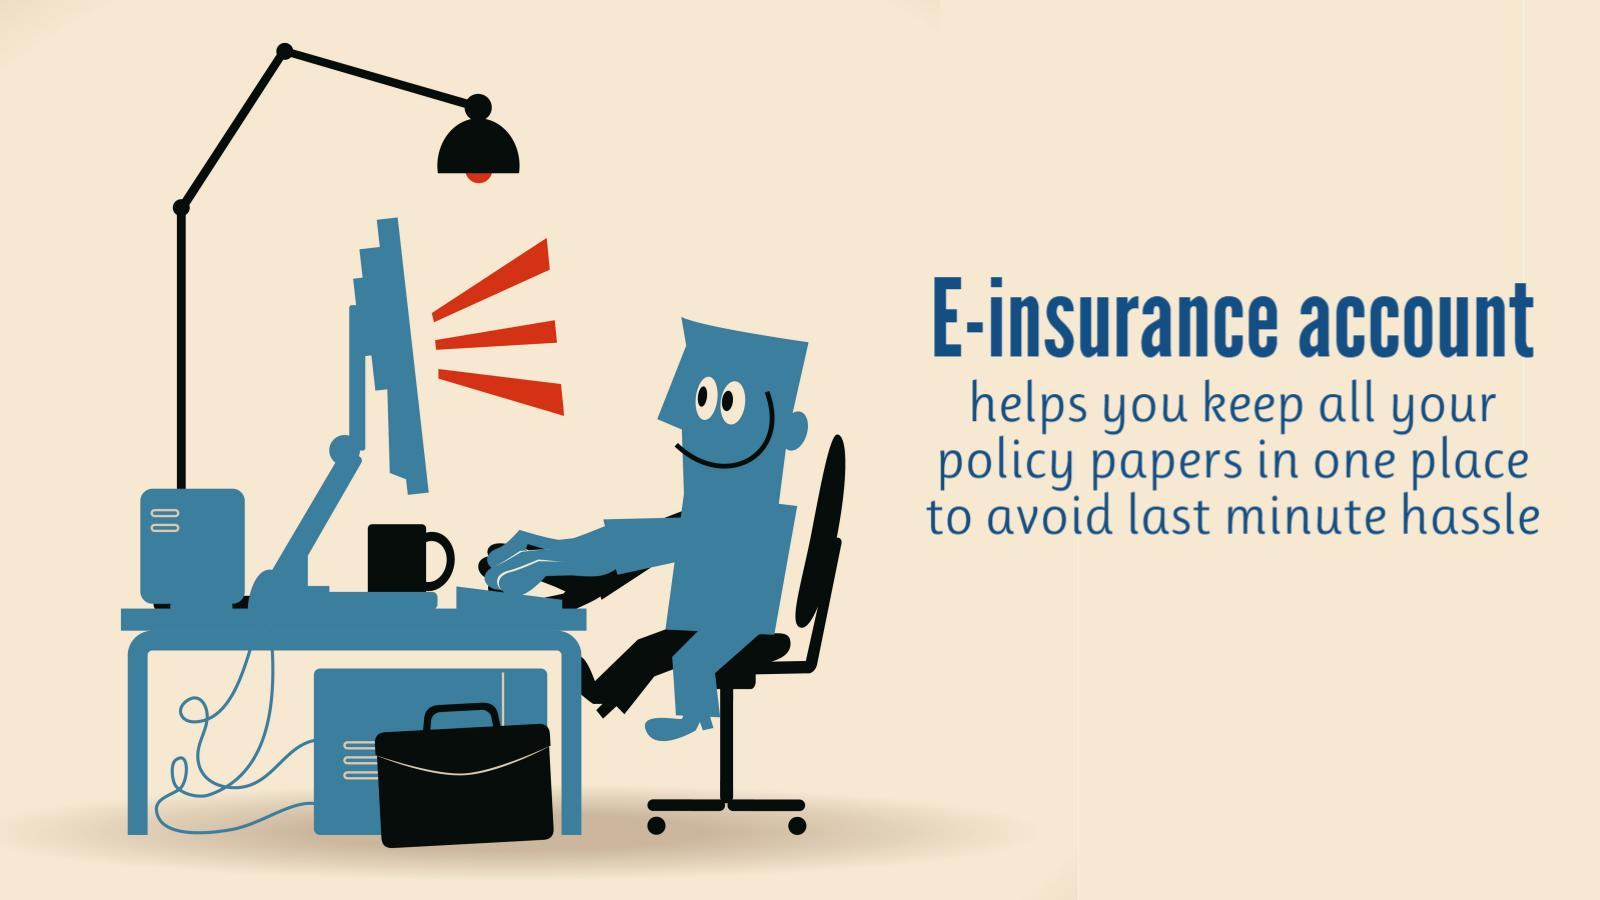 E-insurance account: All you need to know